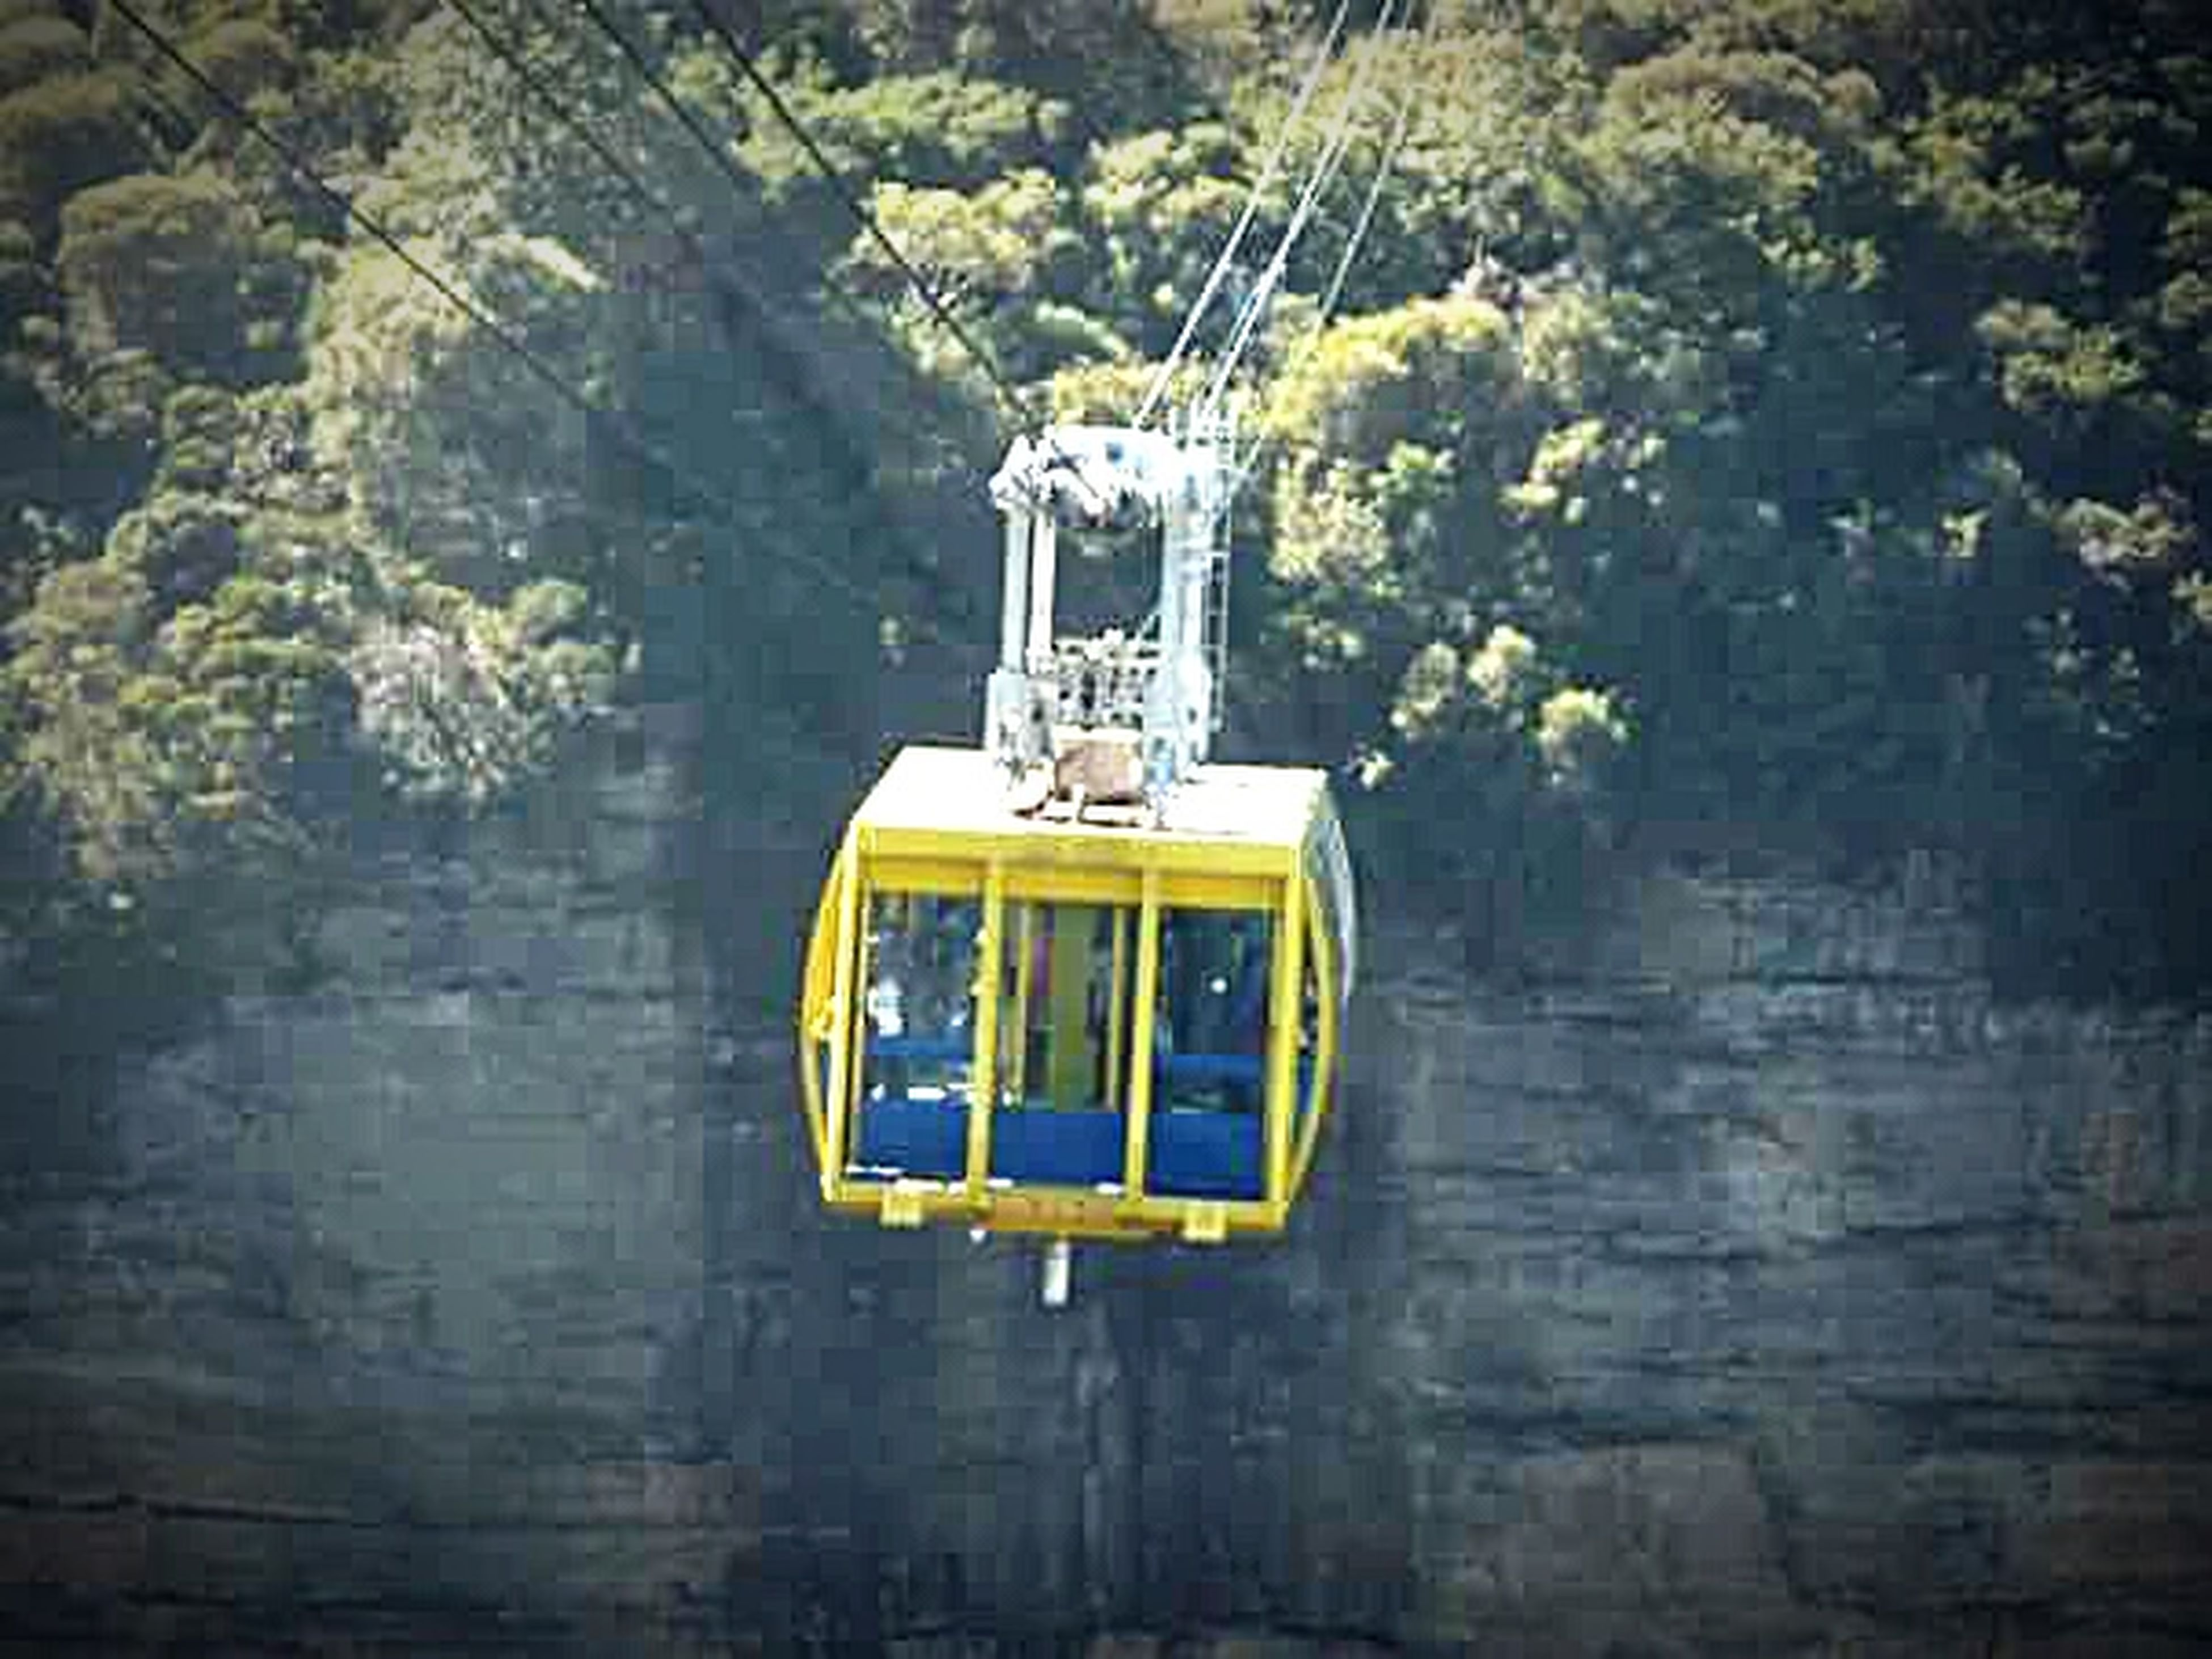 Country Mountain Cable Car Great Atmosphere Acoss Great View Amazing Architecture Katumba Love Australia ❤❤❤